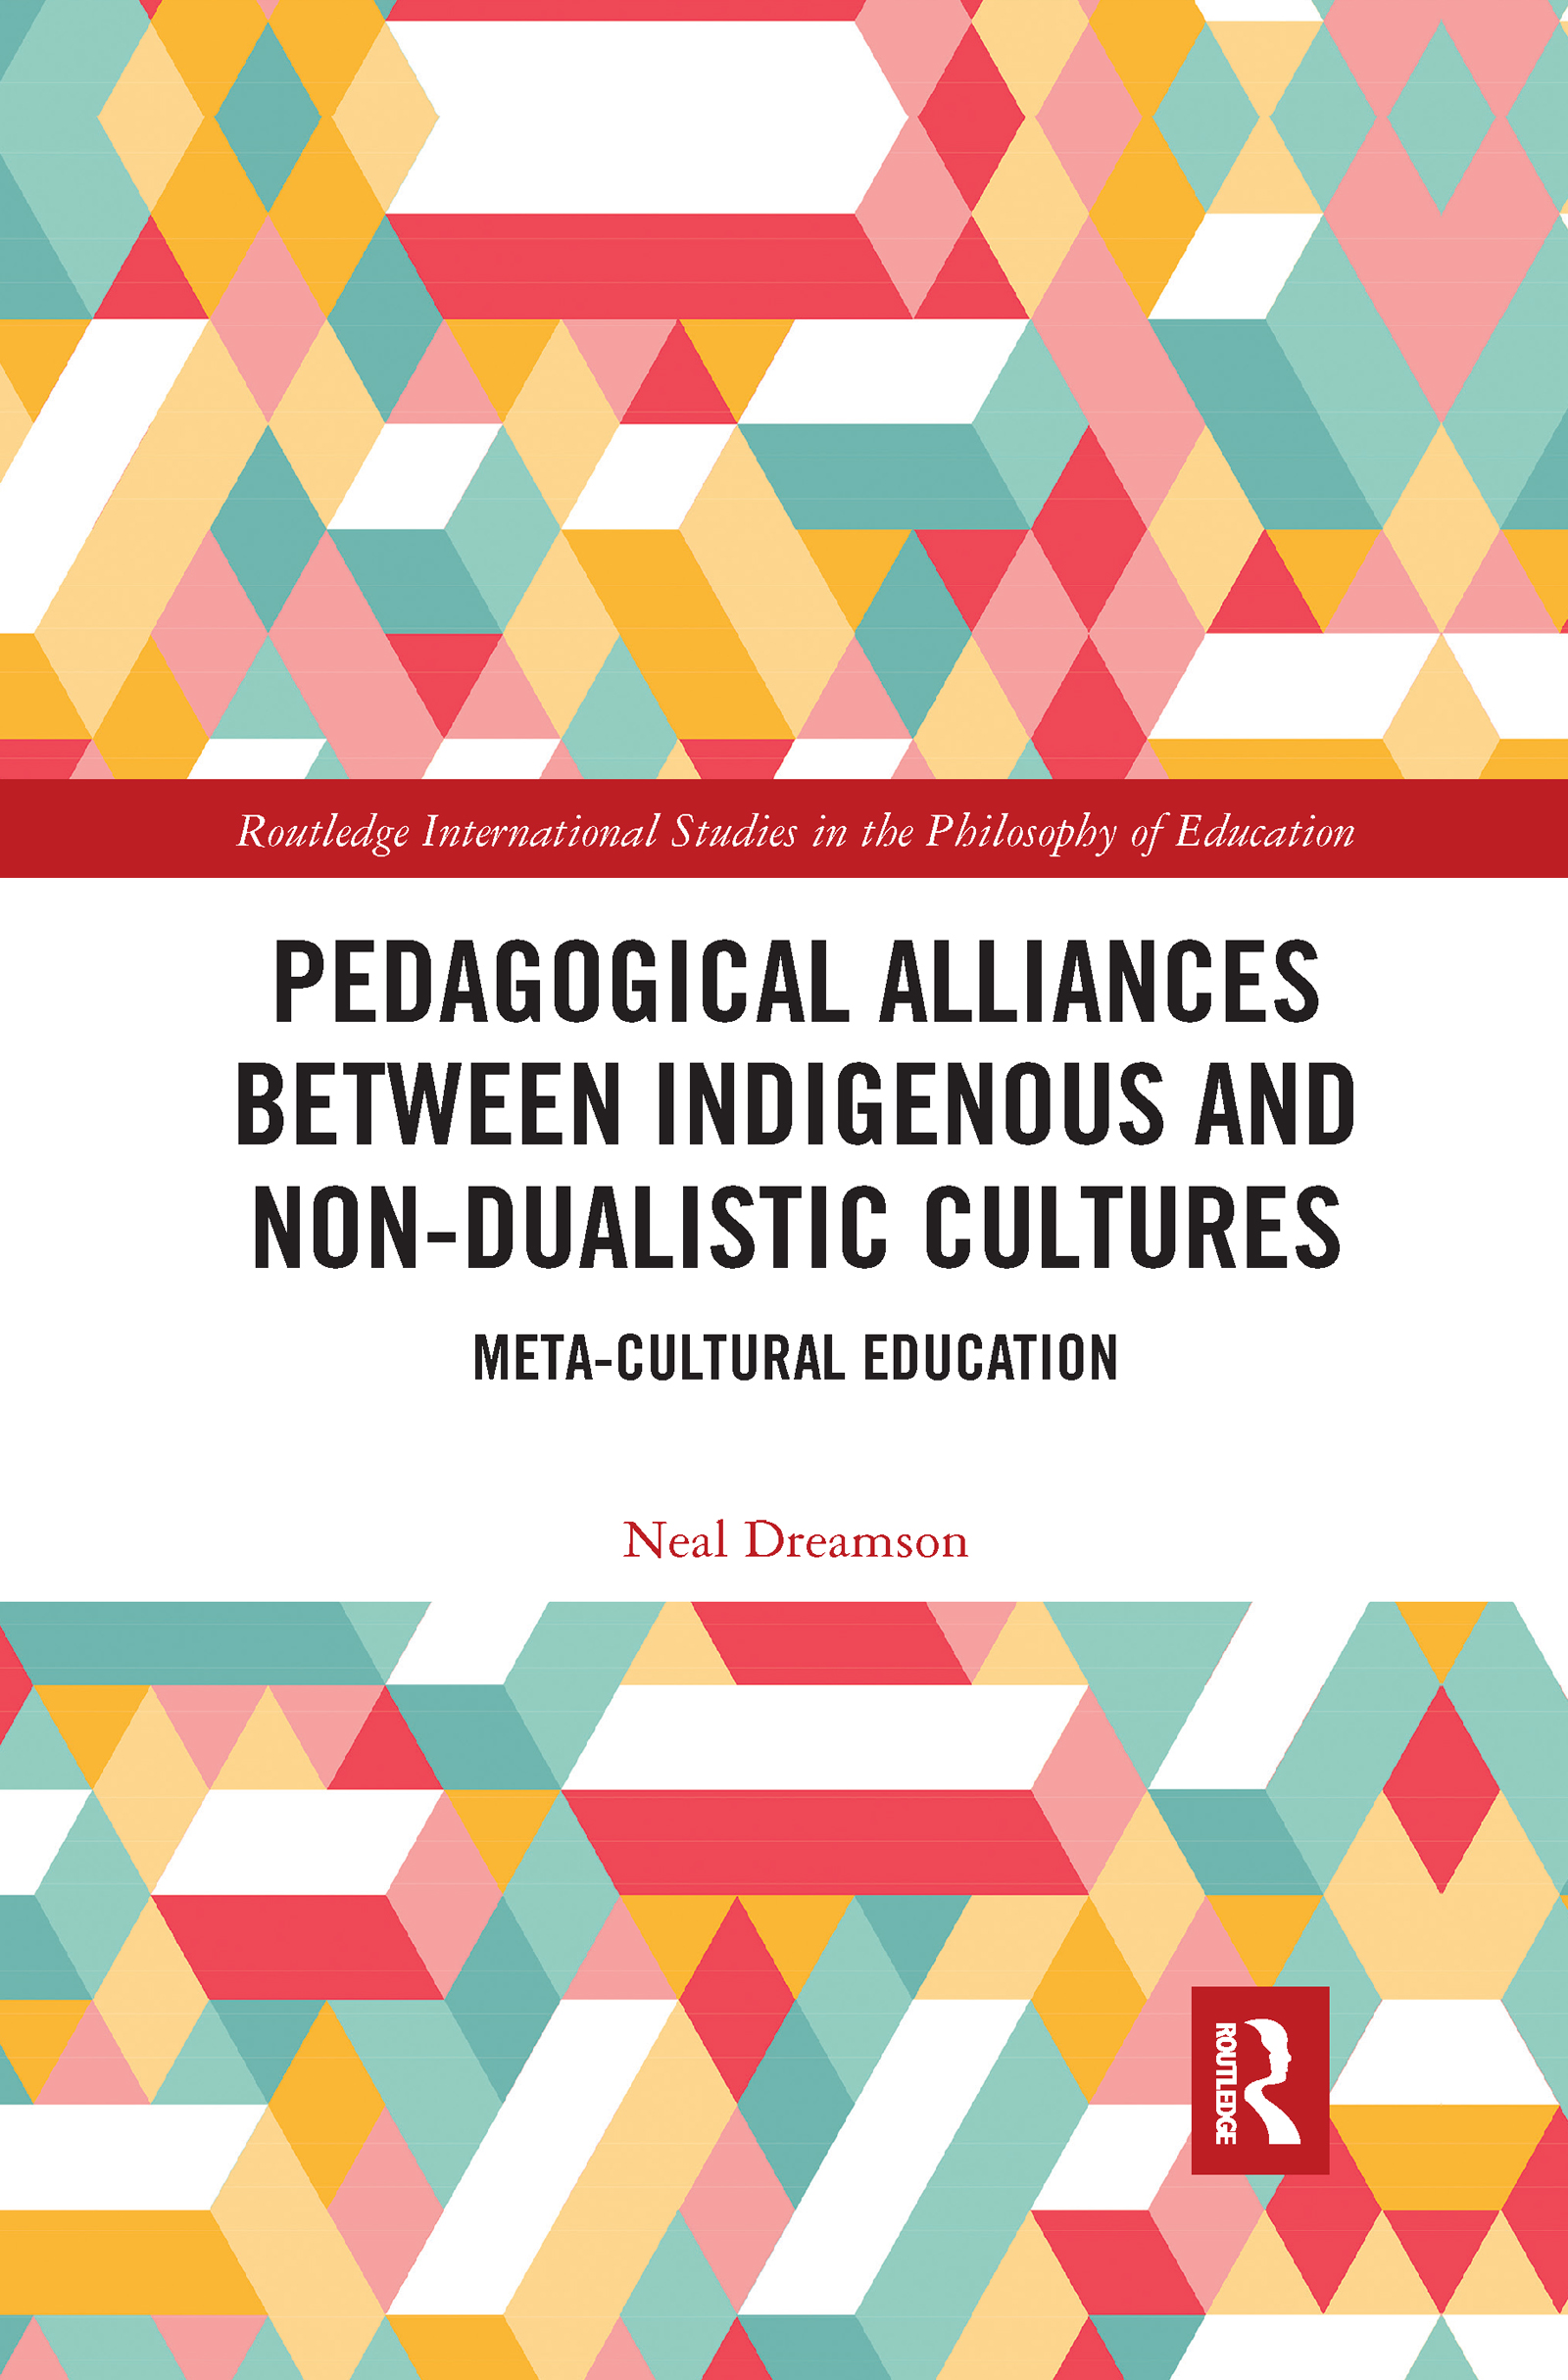 Pedagogical Alliances between Indigenous and Non-Dualistic Cultures